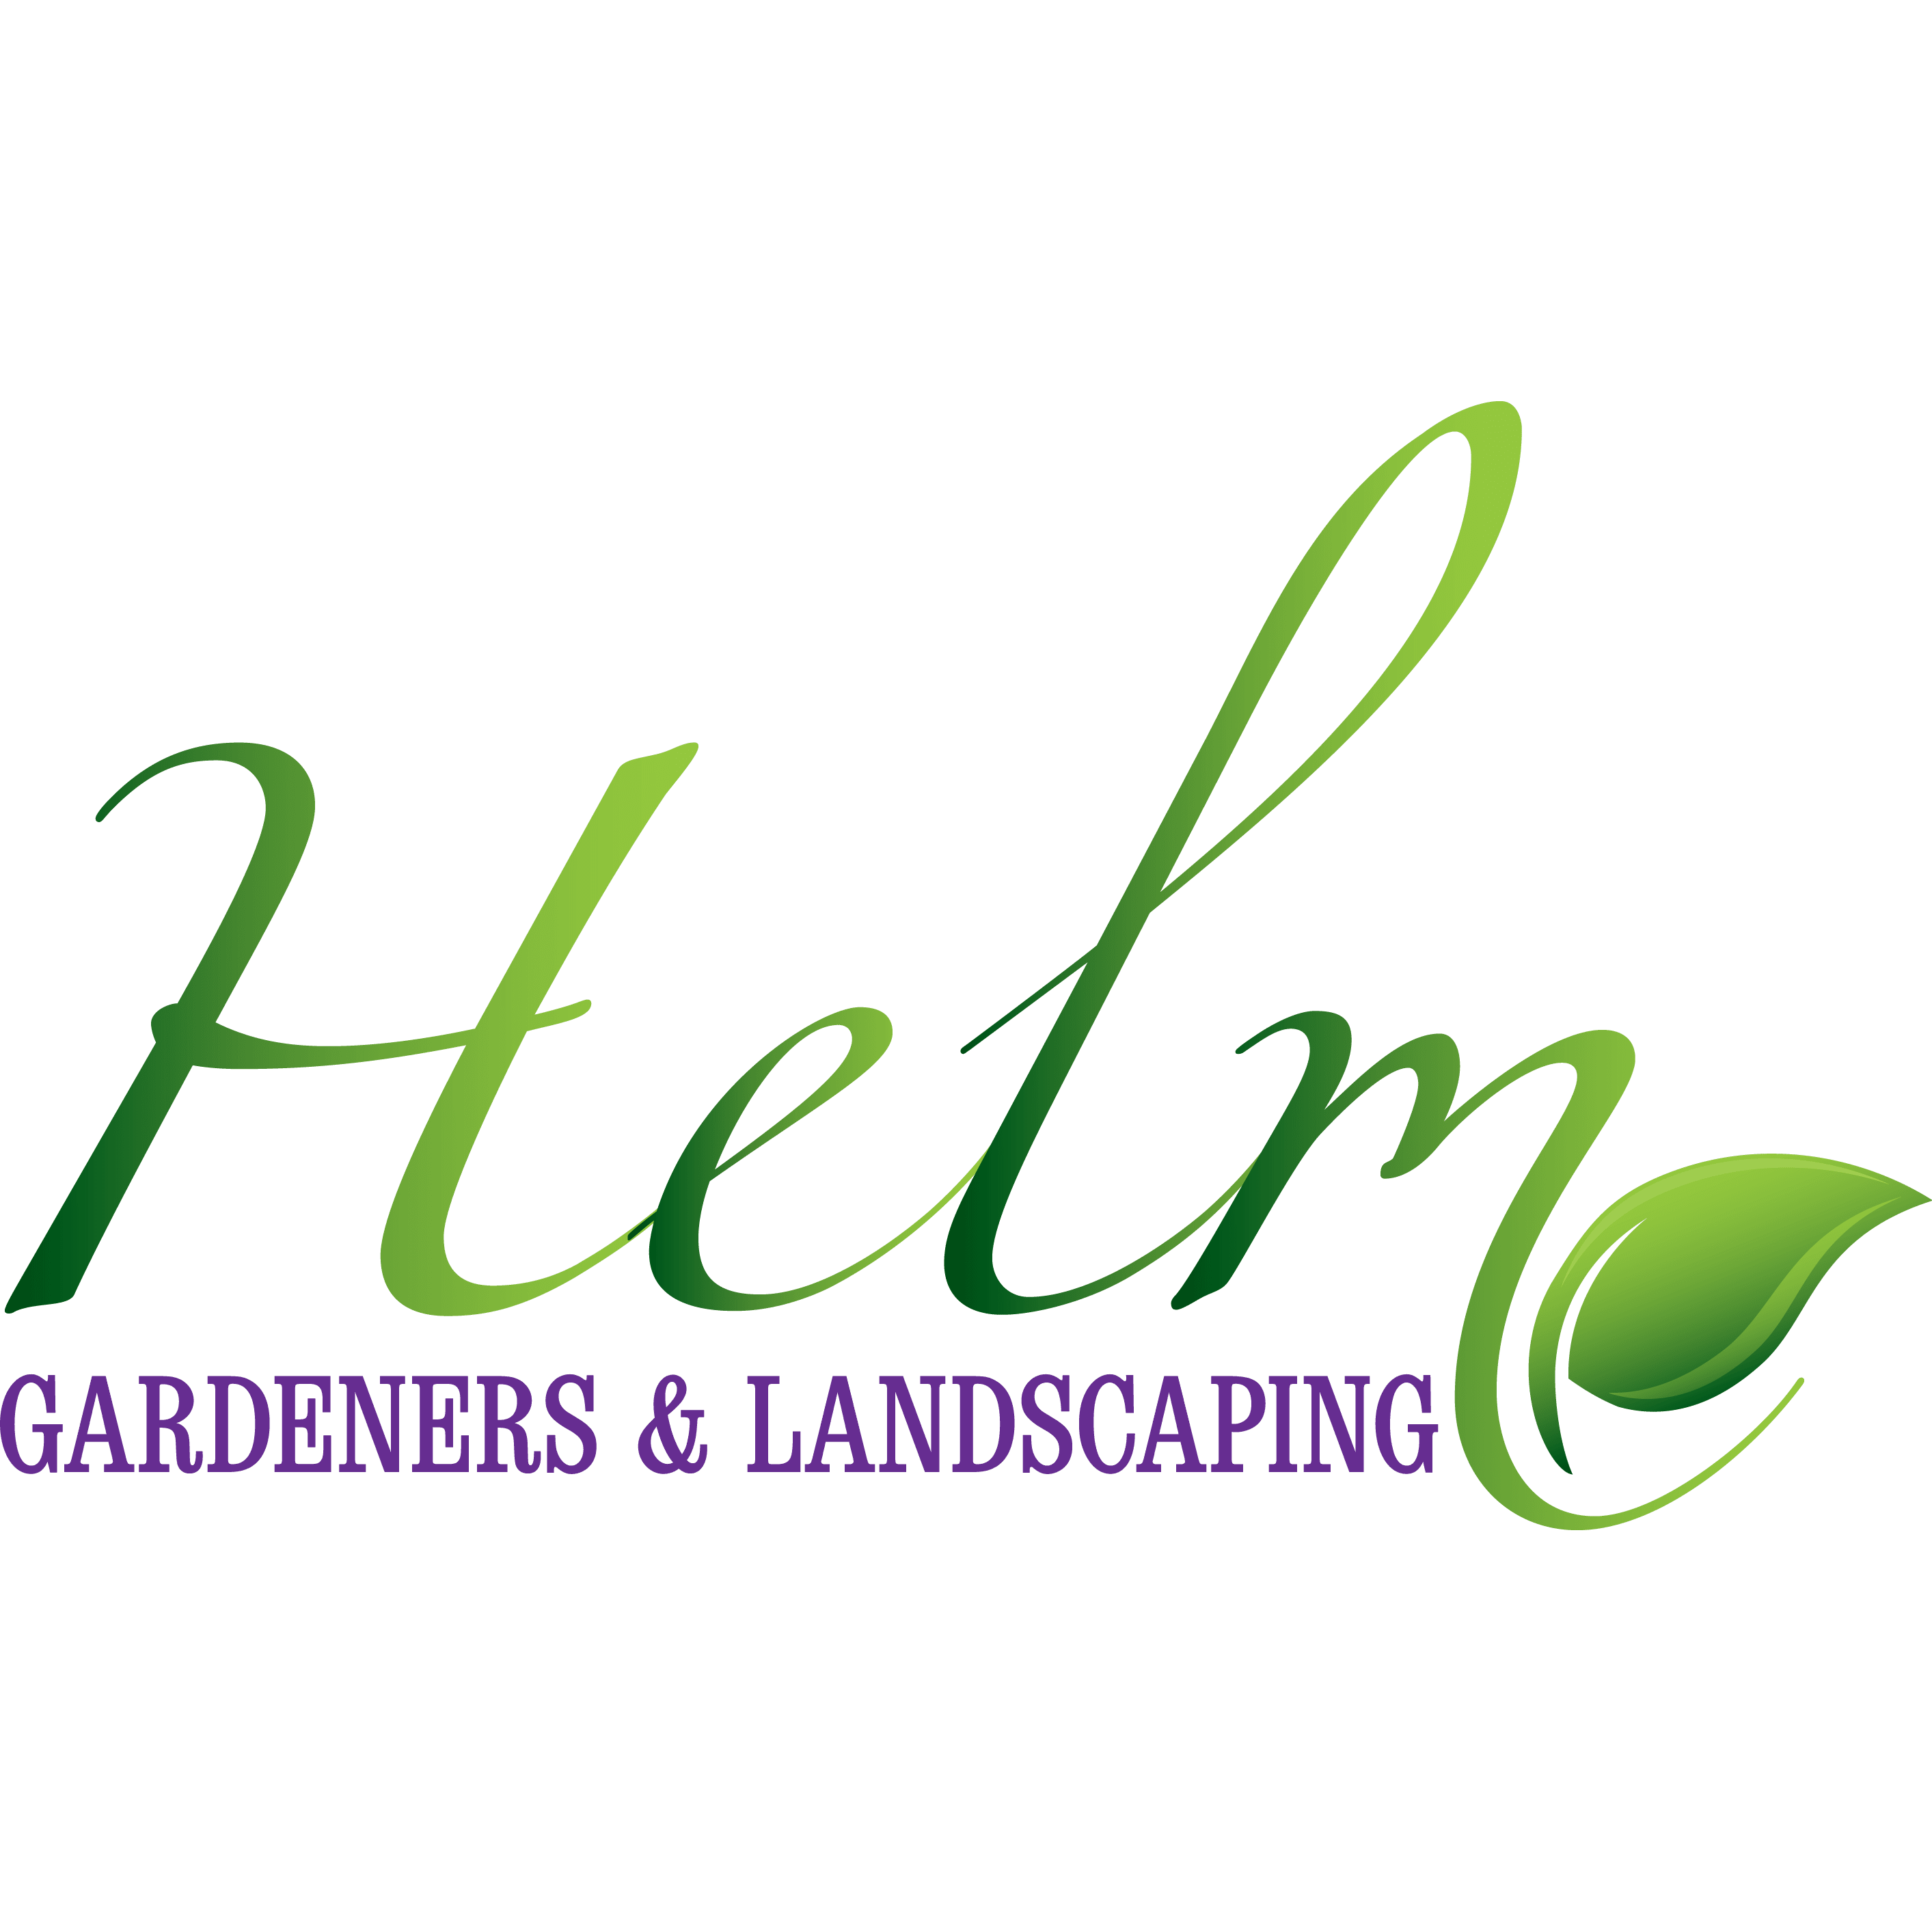 Helm Gardeners & Landscaping Co